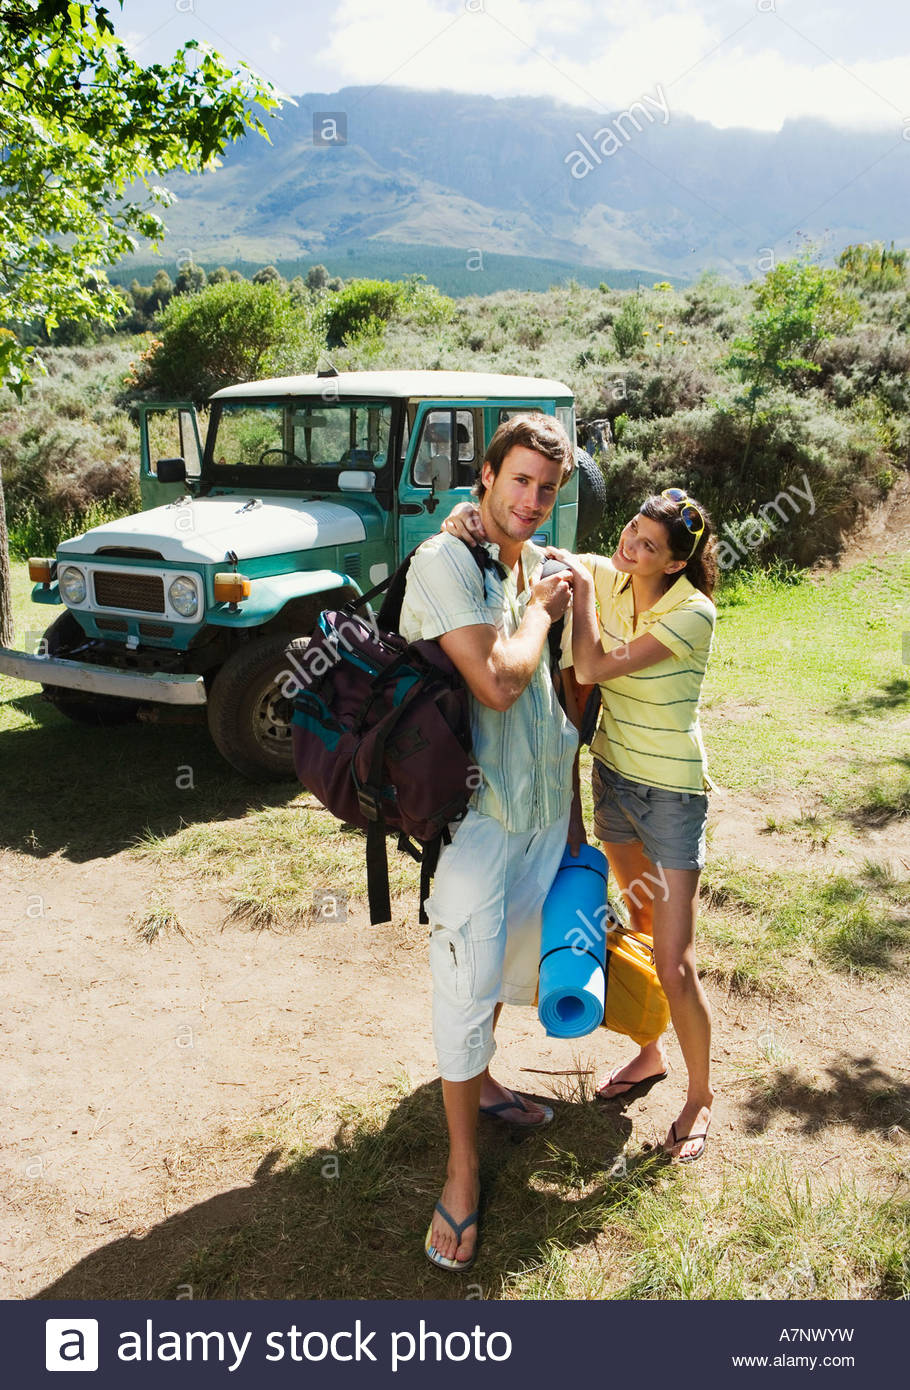 Young couple unloading parked jeep at start of camping holiday woman assisting man smiling portrait - Stock Image